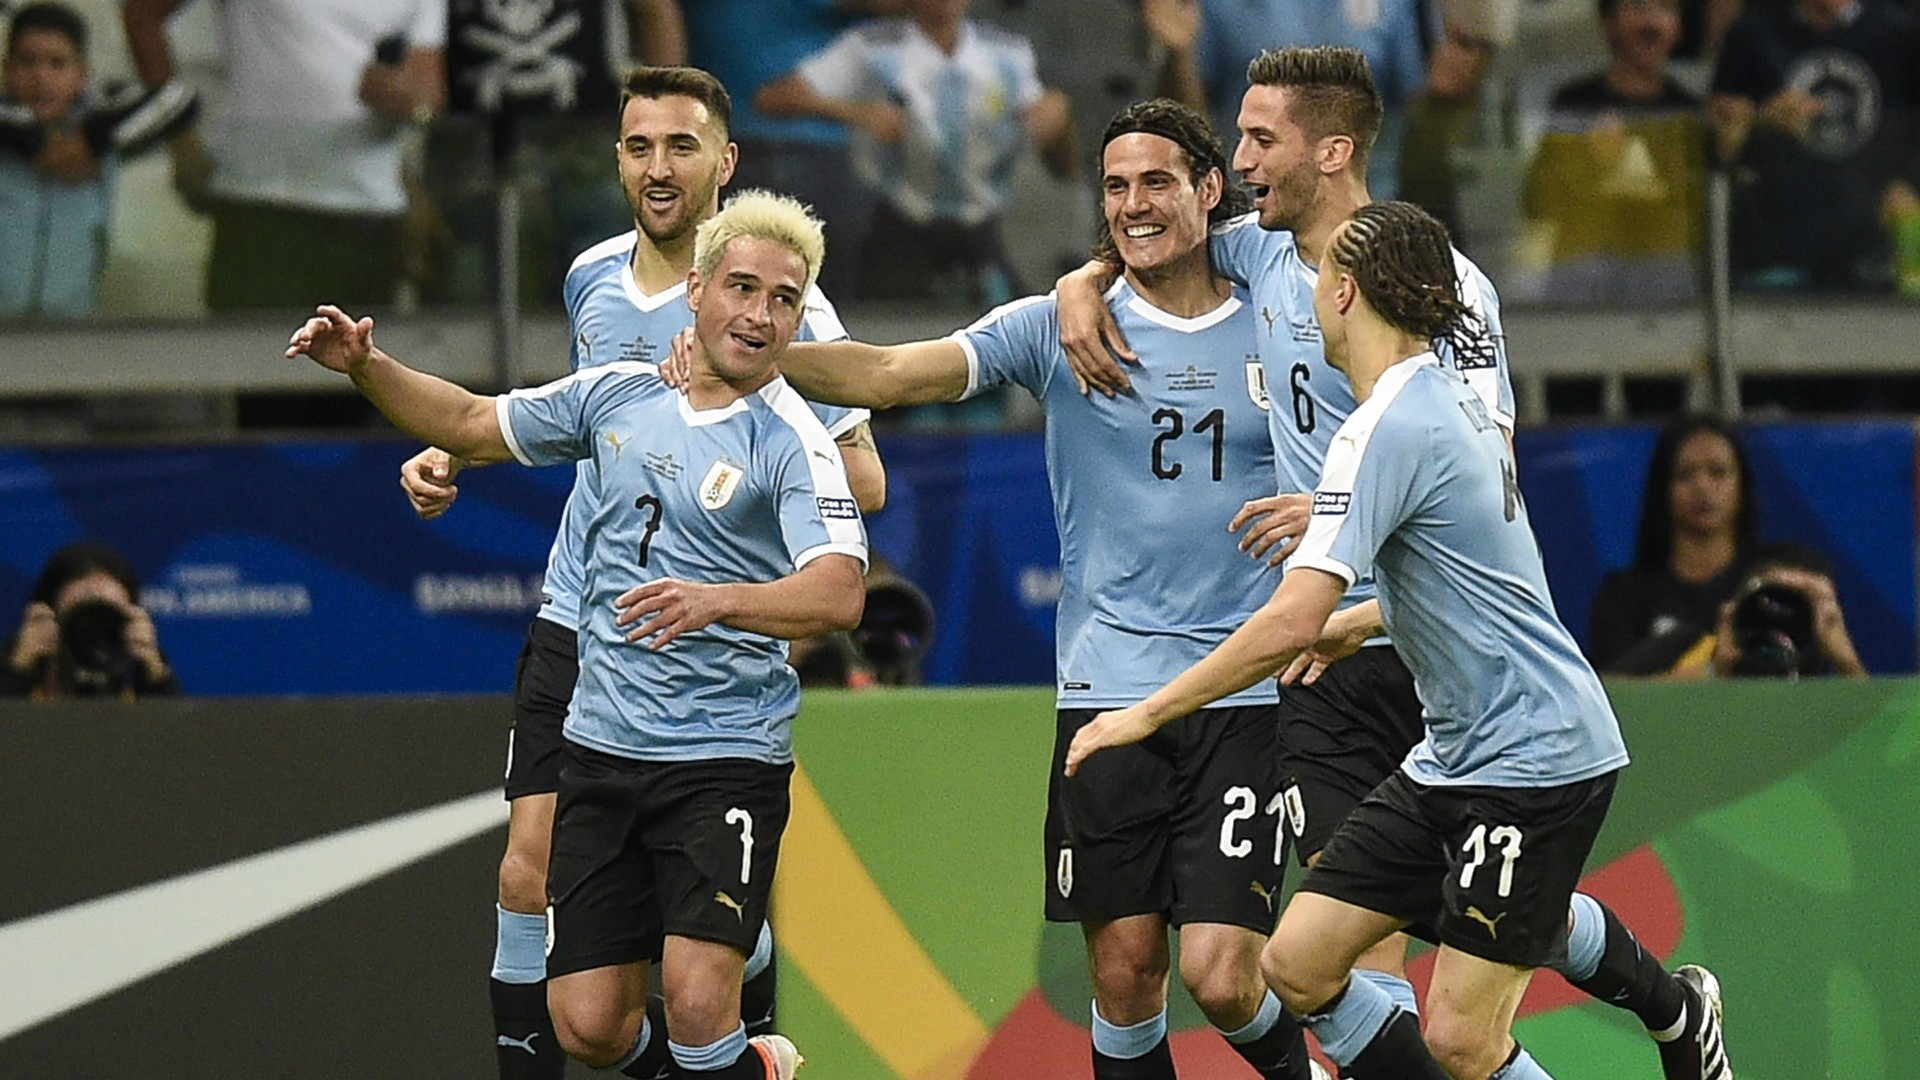 Edinson Cavani, Luis Suarez Score as Uruguay Cruises Past 10-Man Ecuador